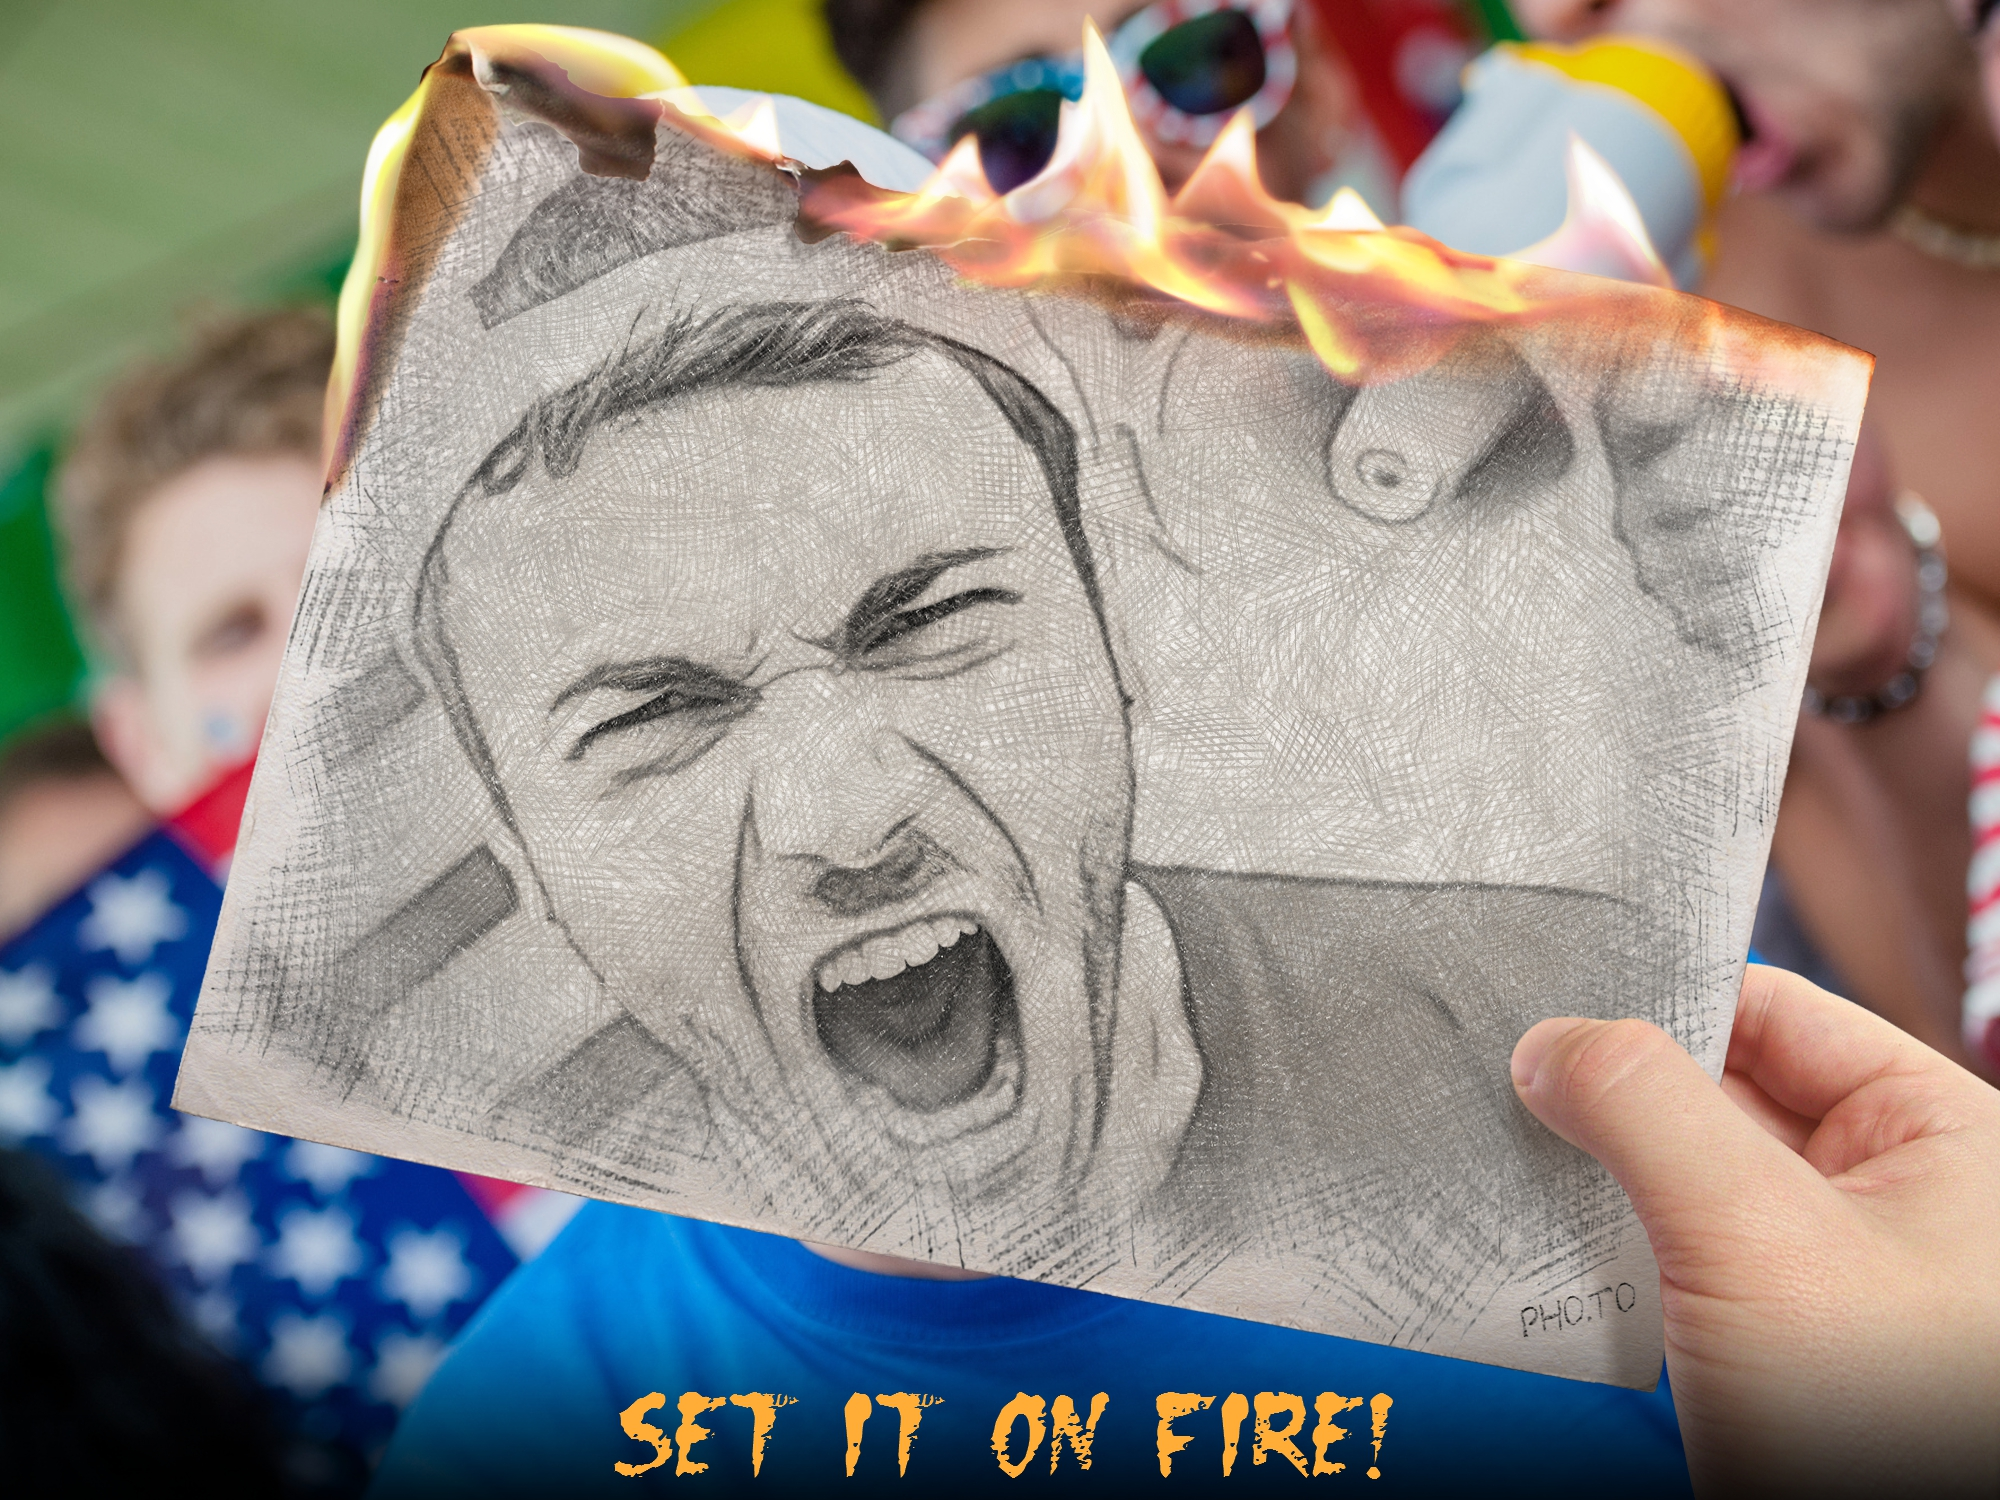 Artistic sketch portrait of a football fan is set on fire